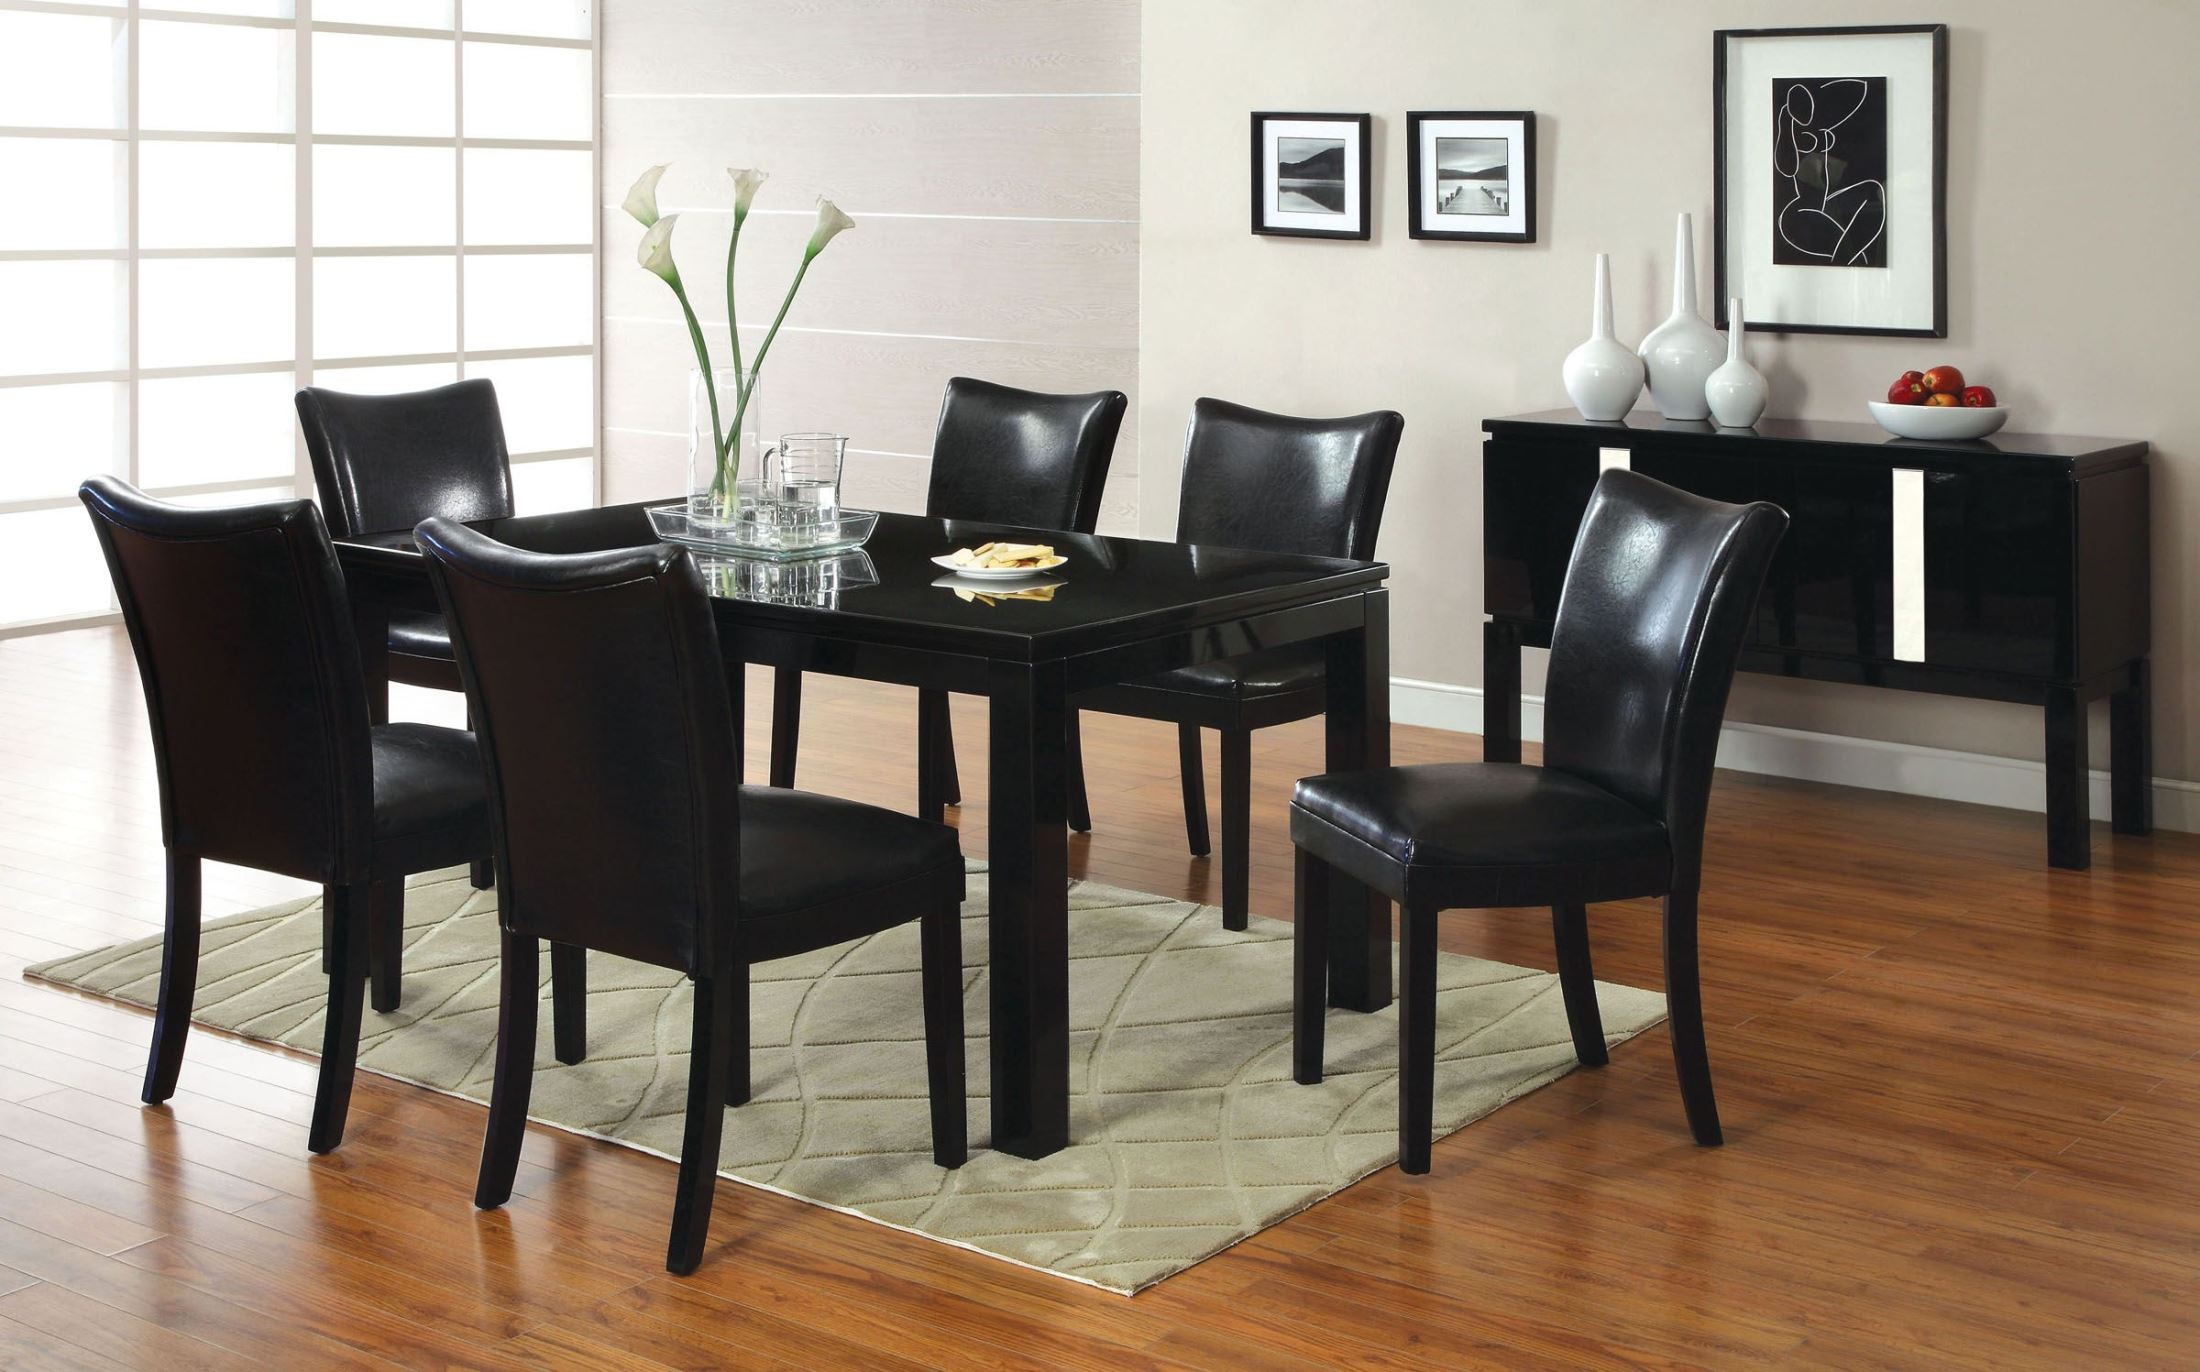 Lamia i black high gloss rectangular leg dining room set for Black dining room set